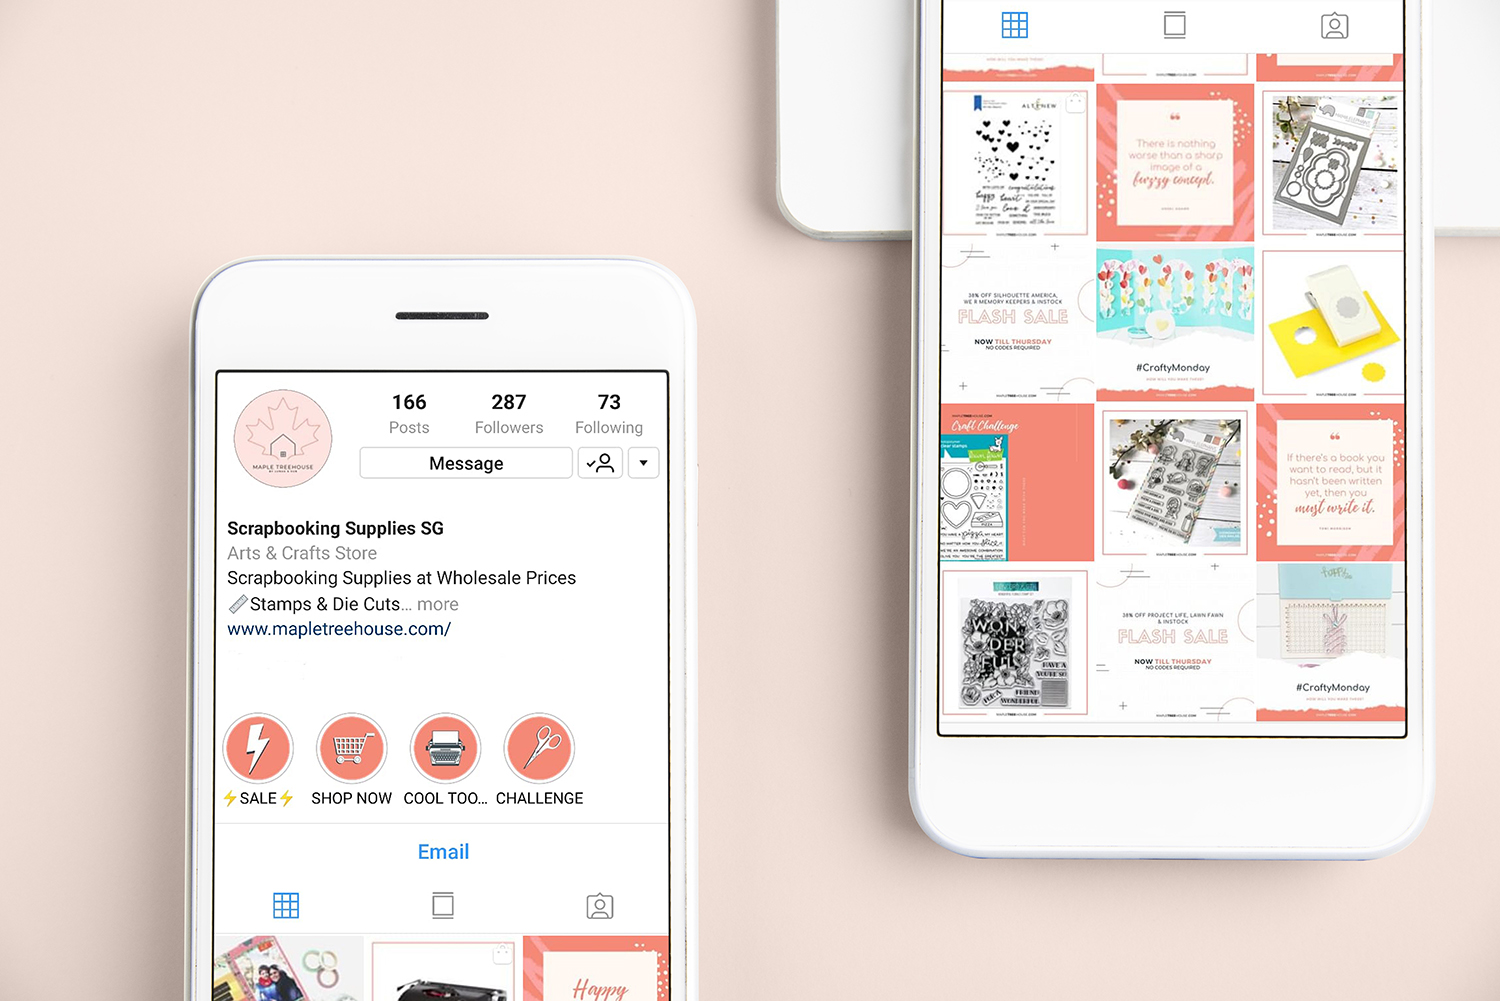 Beautiful Instagram Feed That Converts - We've helped Maple Tree House direct Instagram traffic to online store. Since we've started, even with 300 followers, we managed to help Maple Tree House TRIPLE (that's 3x) their revenue — with 70% of traffic coming from Instagram.